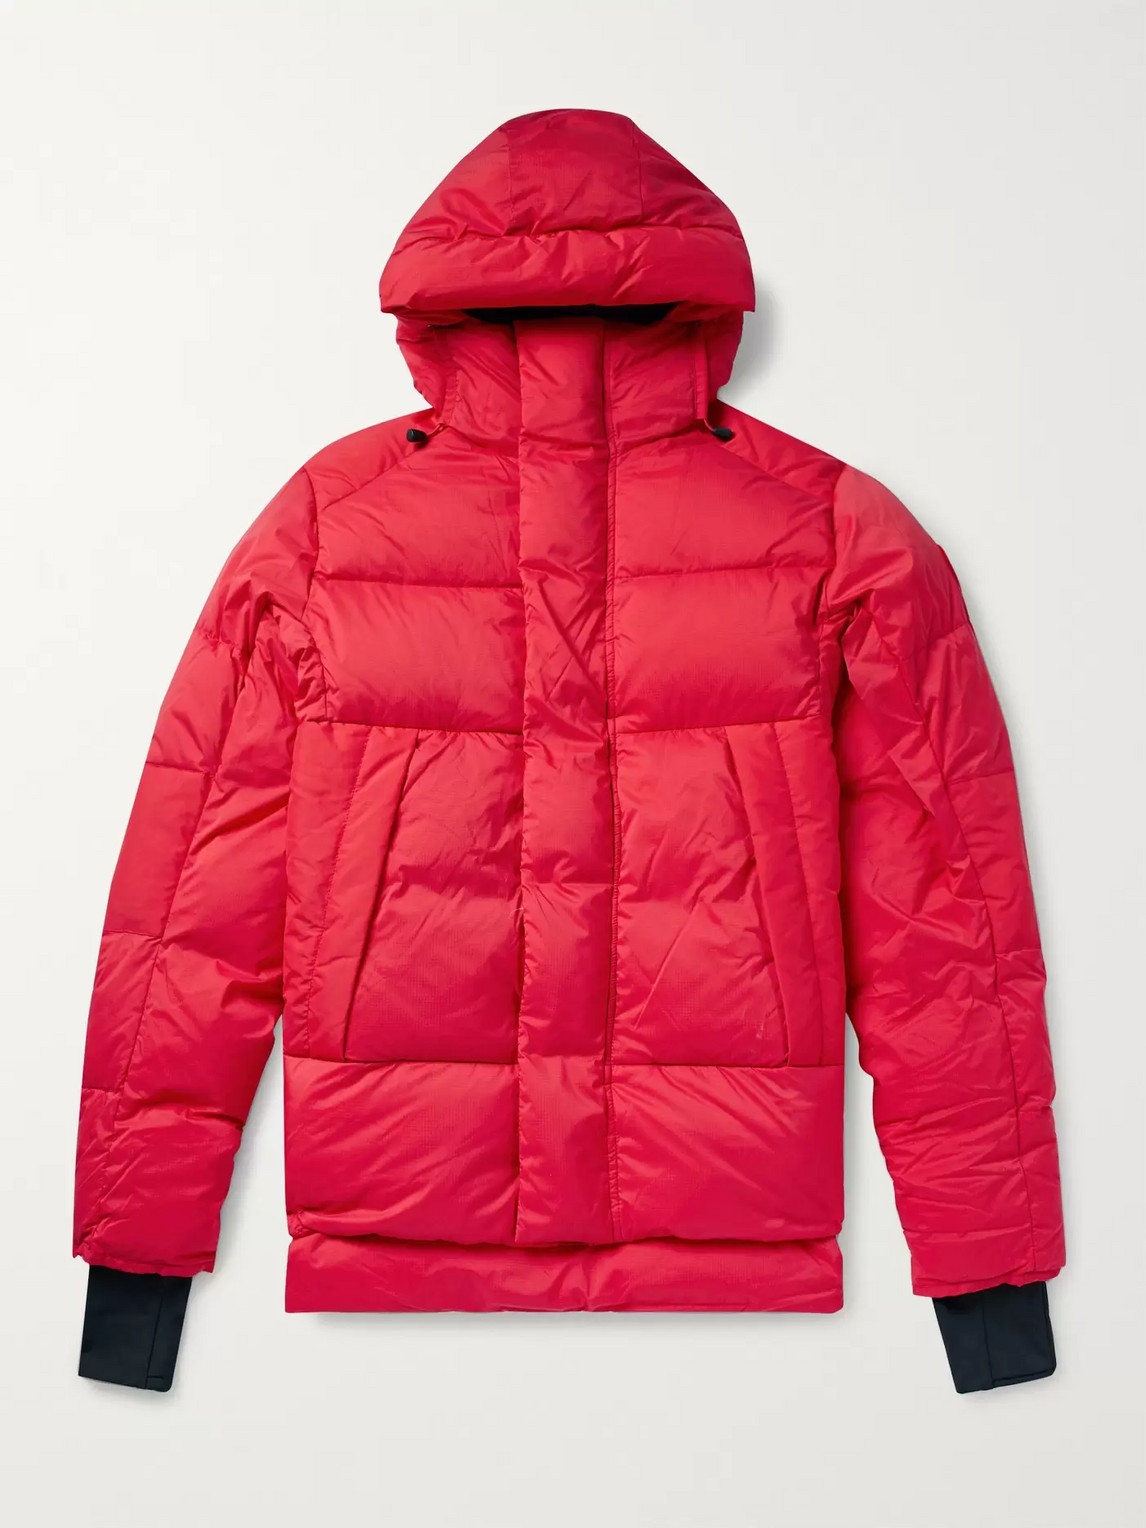 canada goose - armstrong packable quilted nylon-ripstop hooded down jacket - men - red